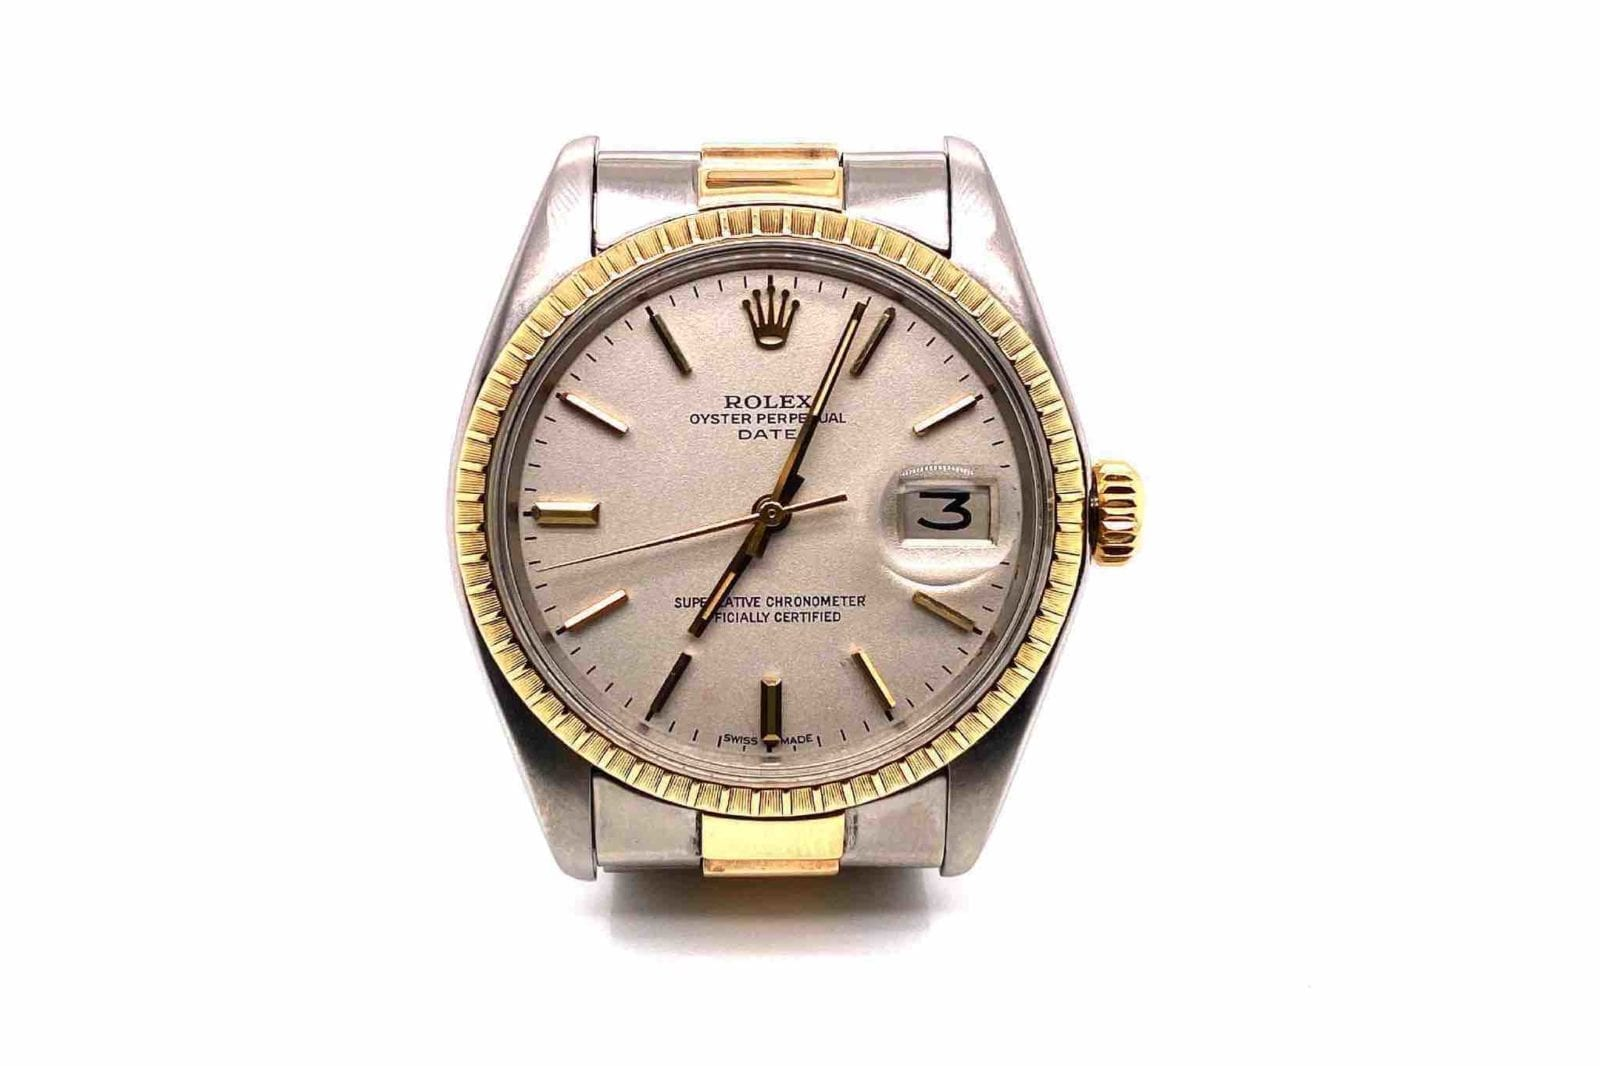 Montre Rolex Oyster